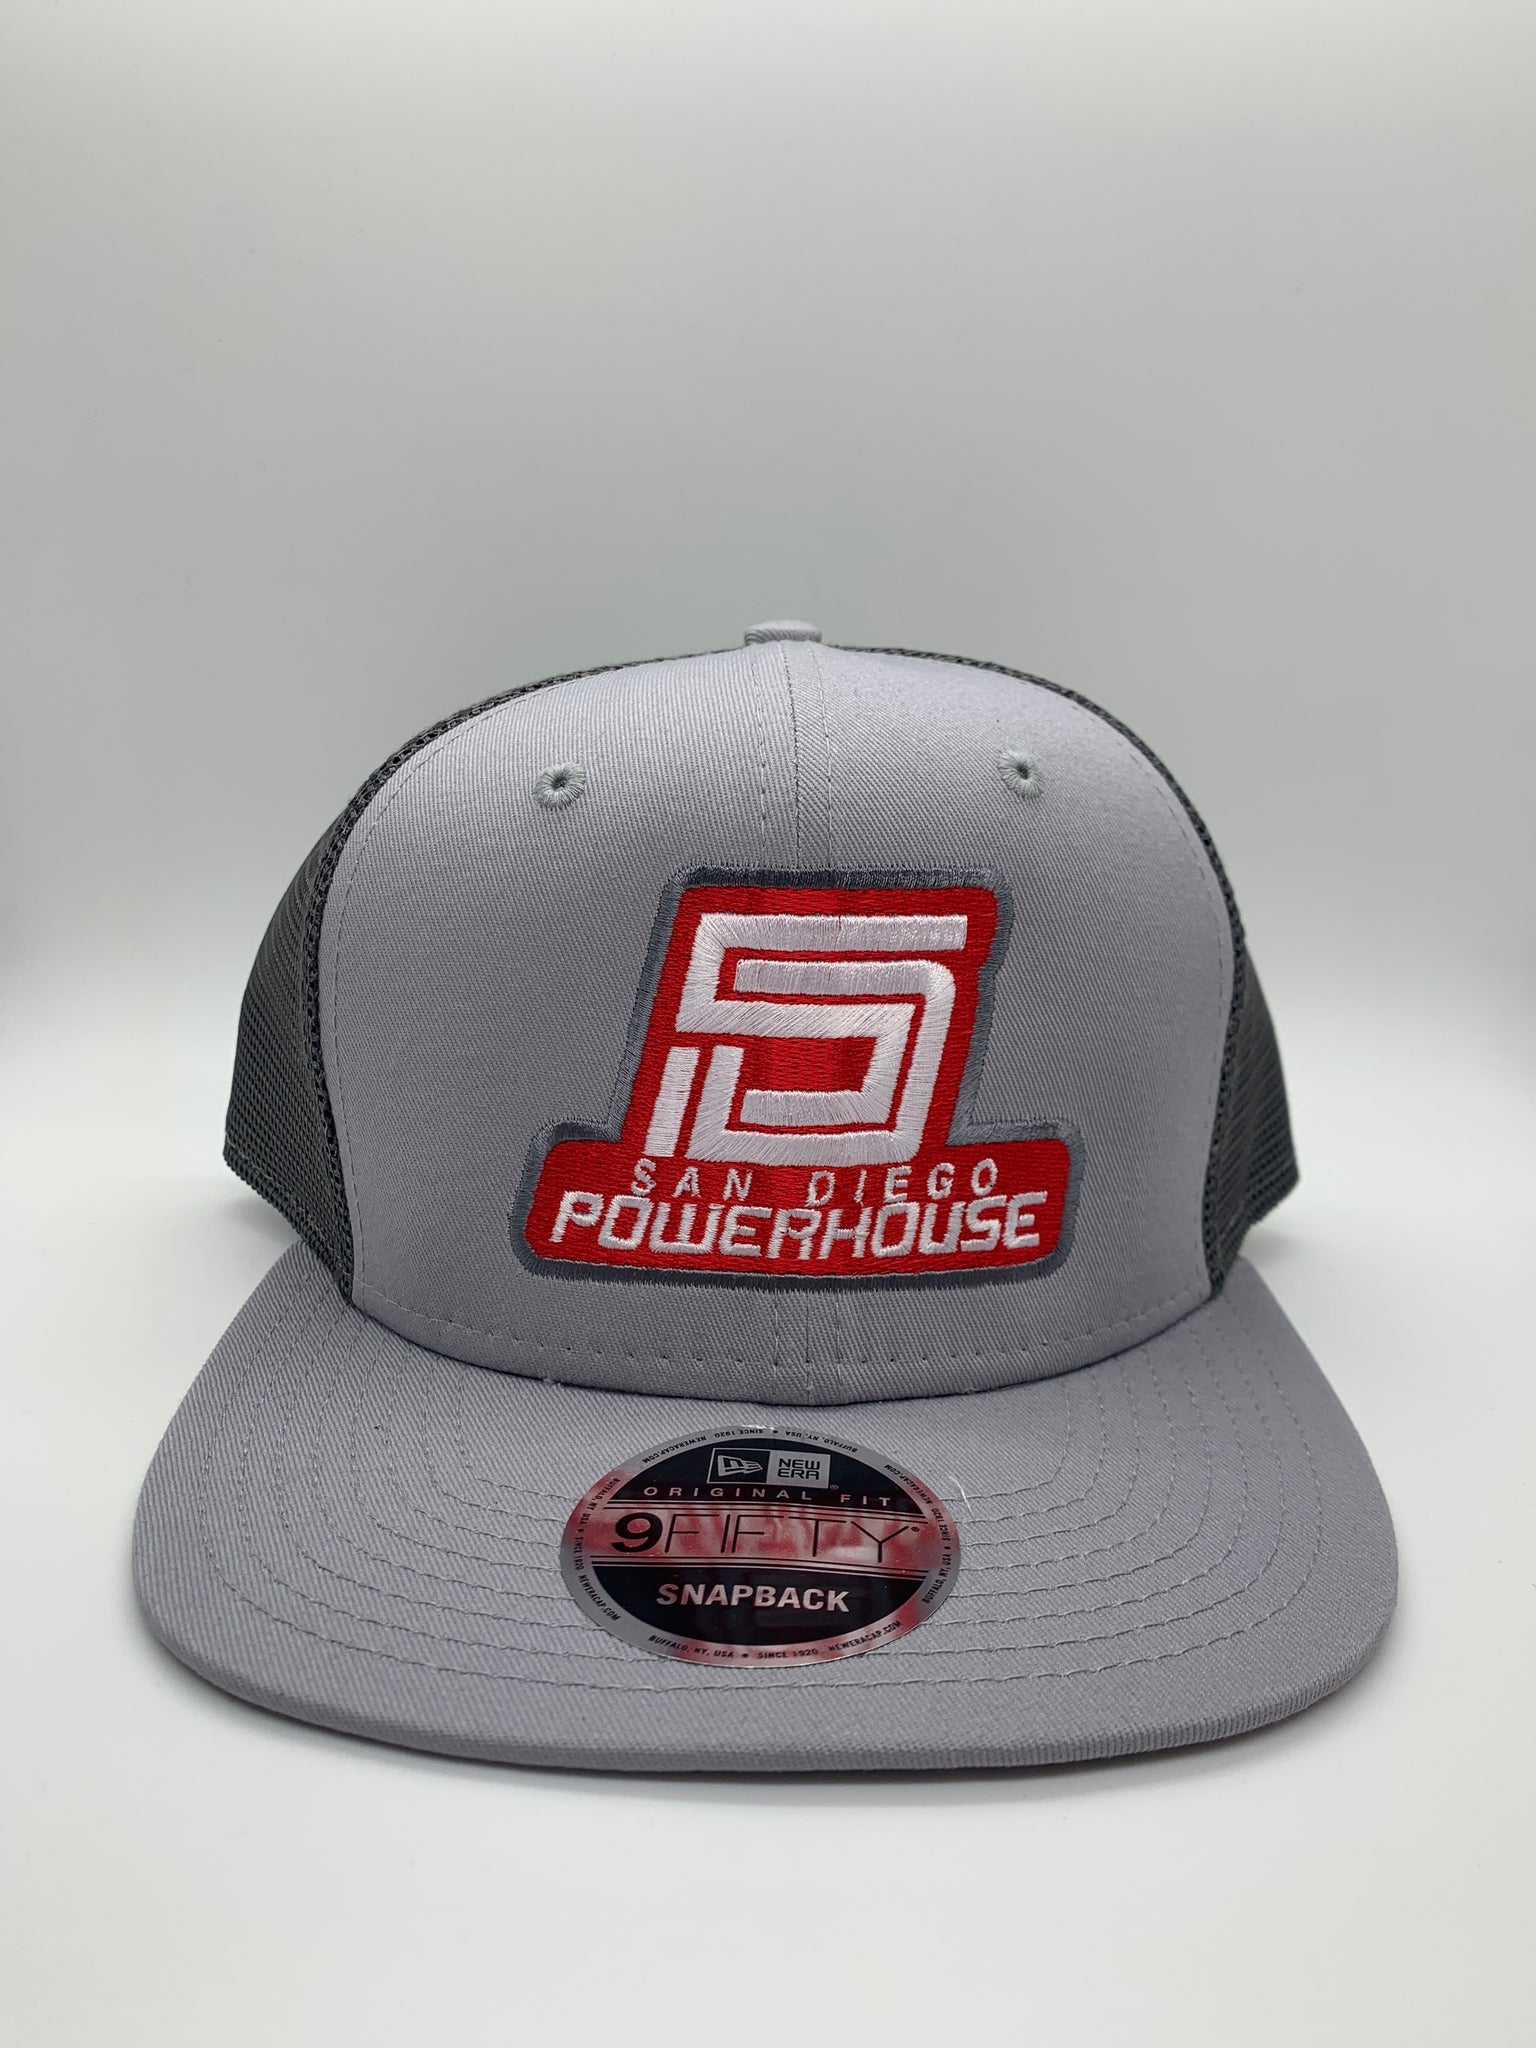 San Diego Powerhouse 9Fifty Mesh Snapback